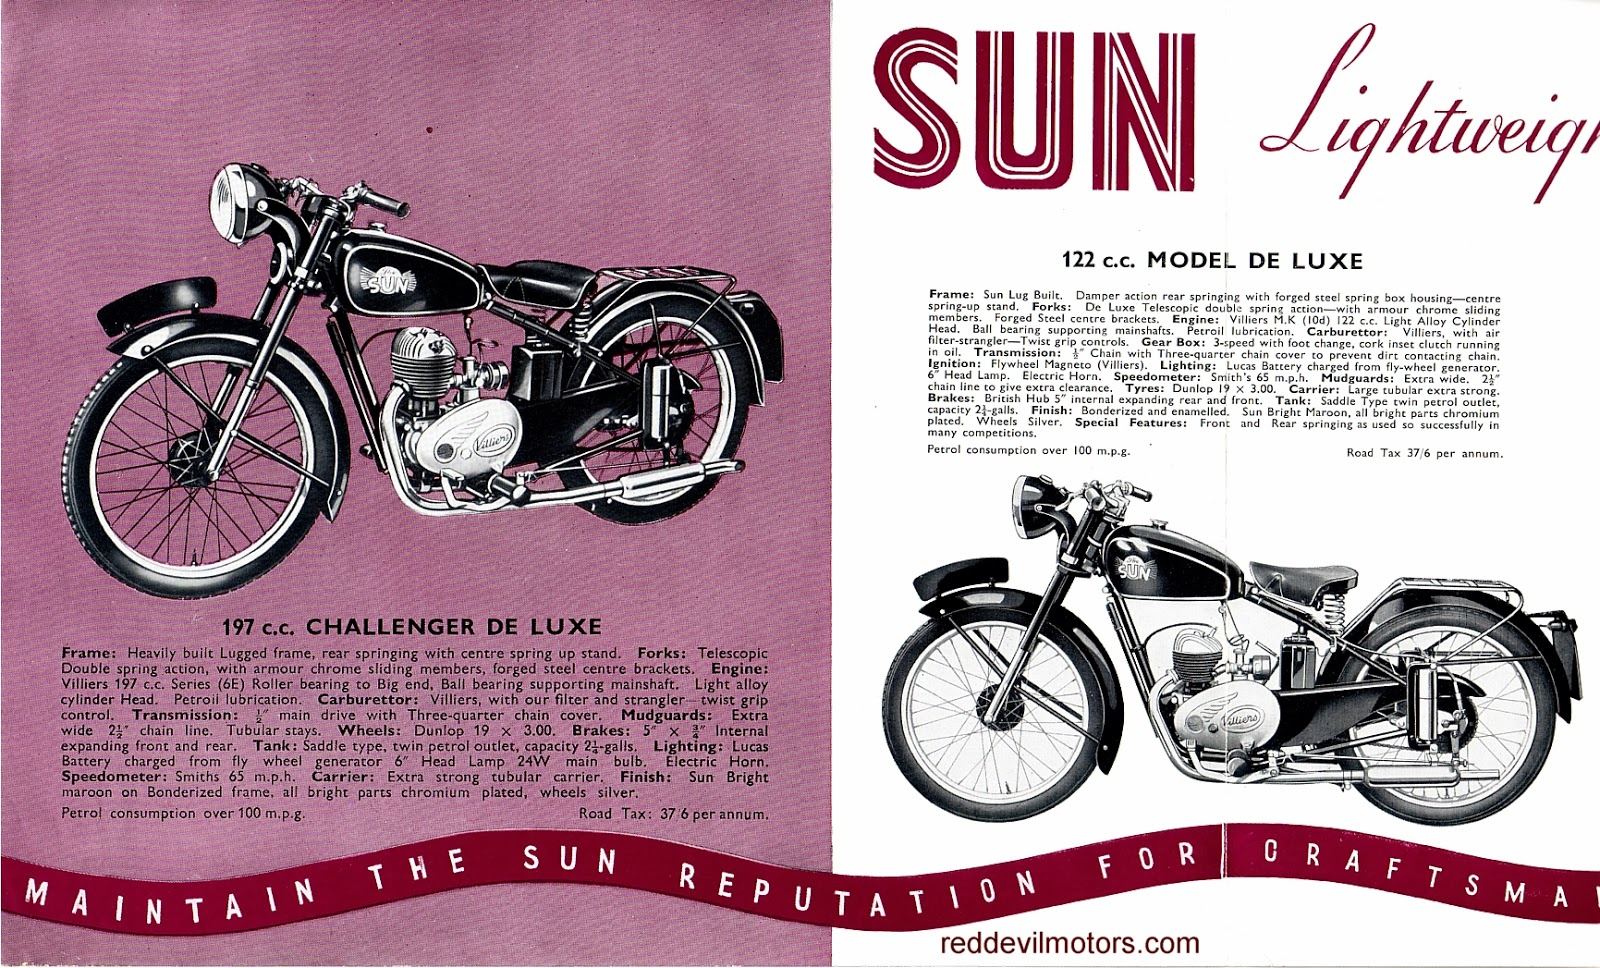 Vincent motorcycle brochure 1952 front cover - 1952 Sun Motorcycles Brochure Centre Spread Pt 1